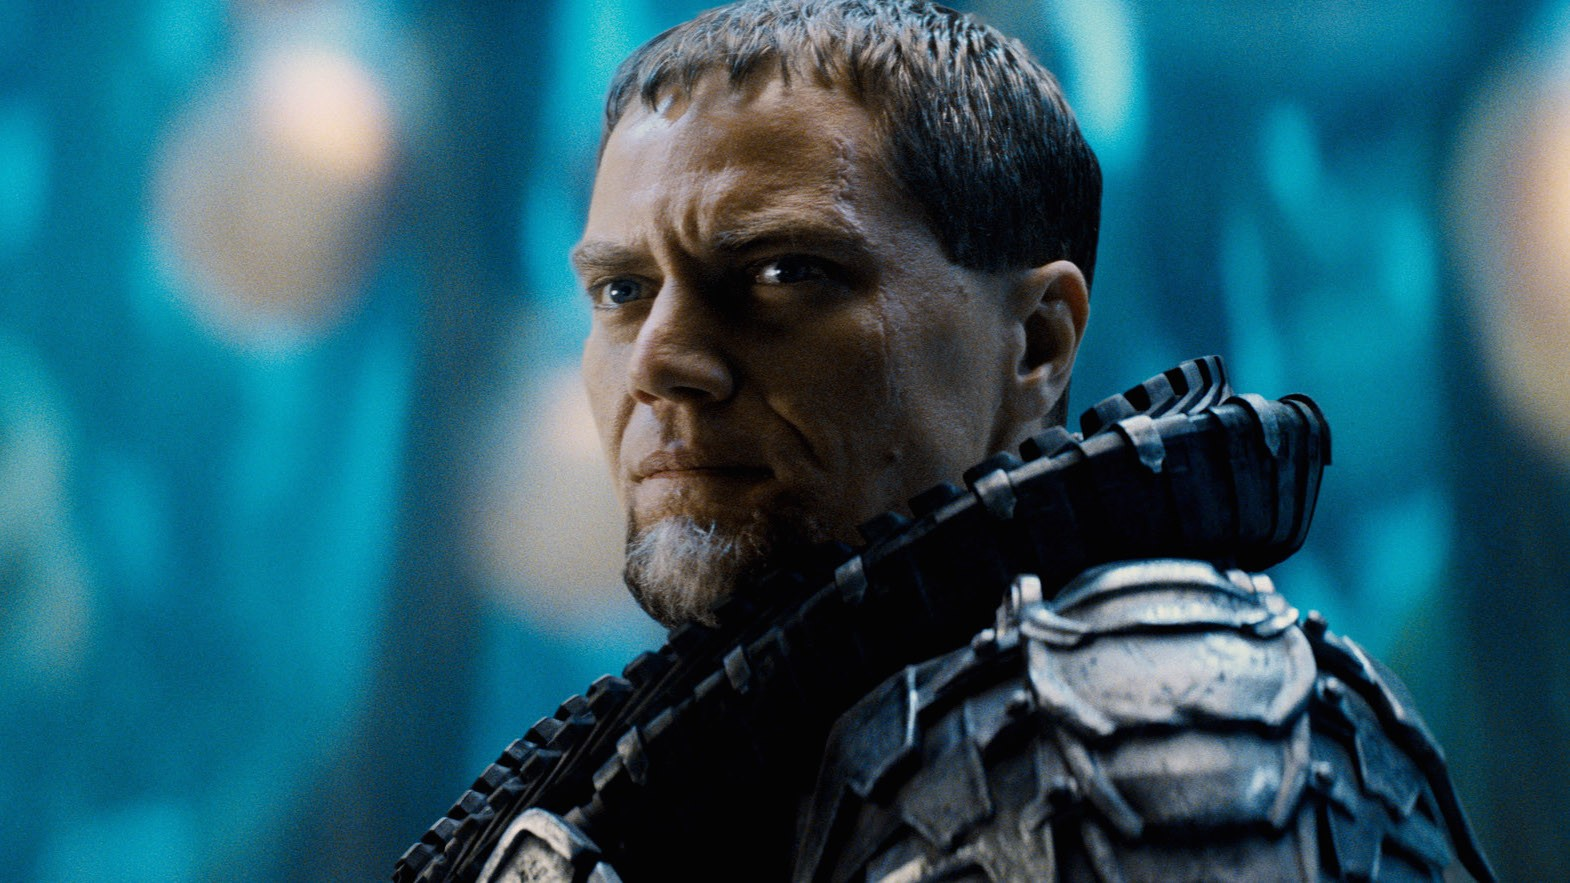 Man-of-Steel-Michael-Shannon-image-5